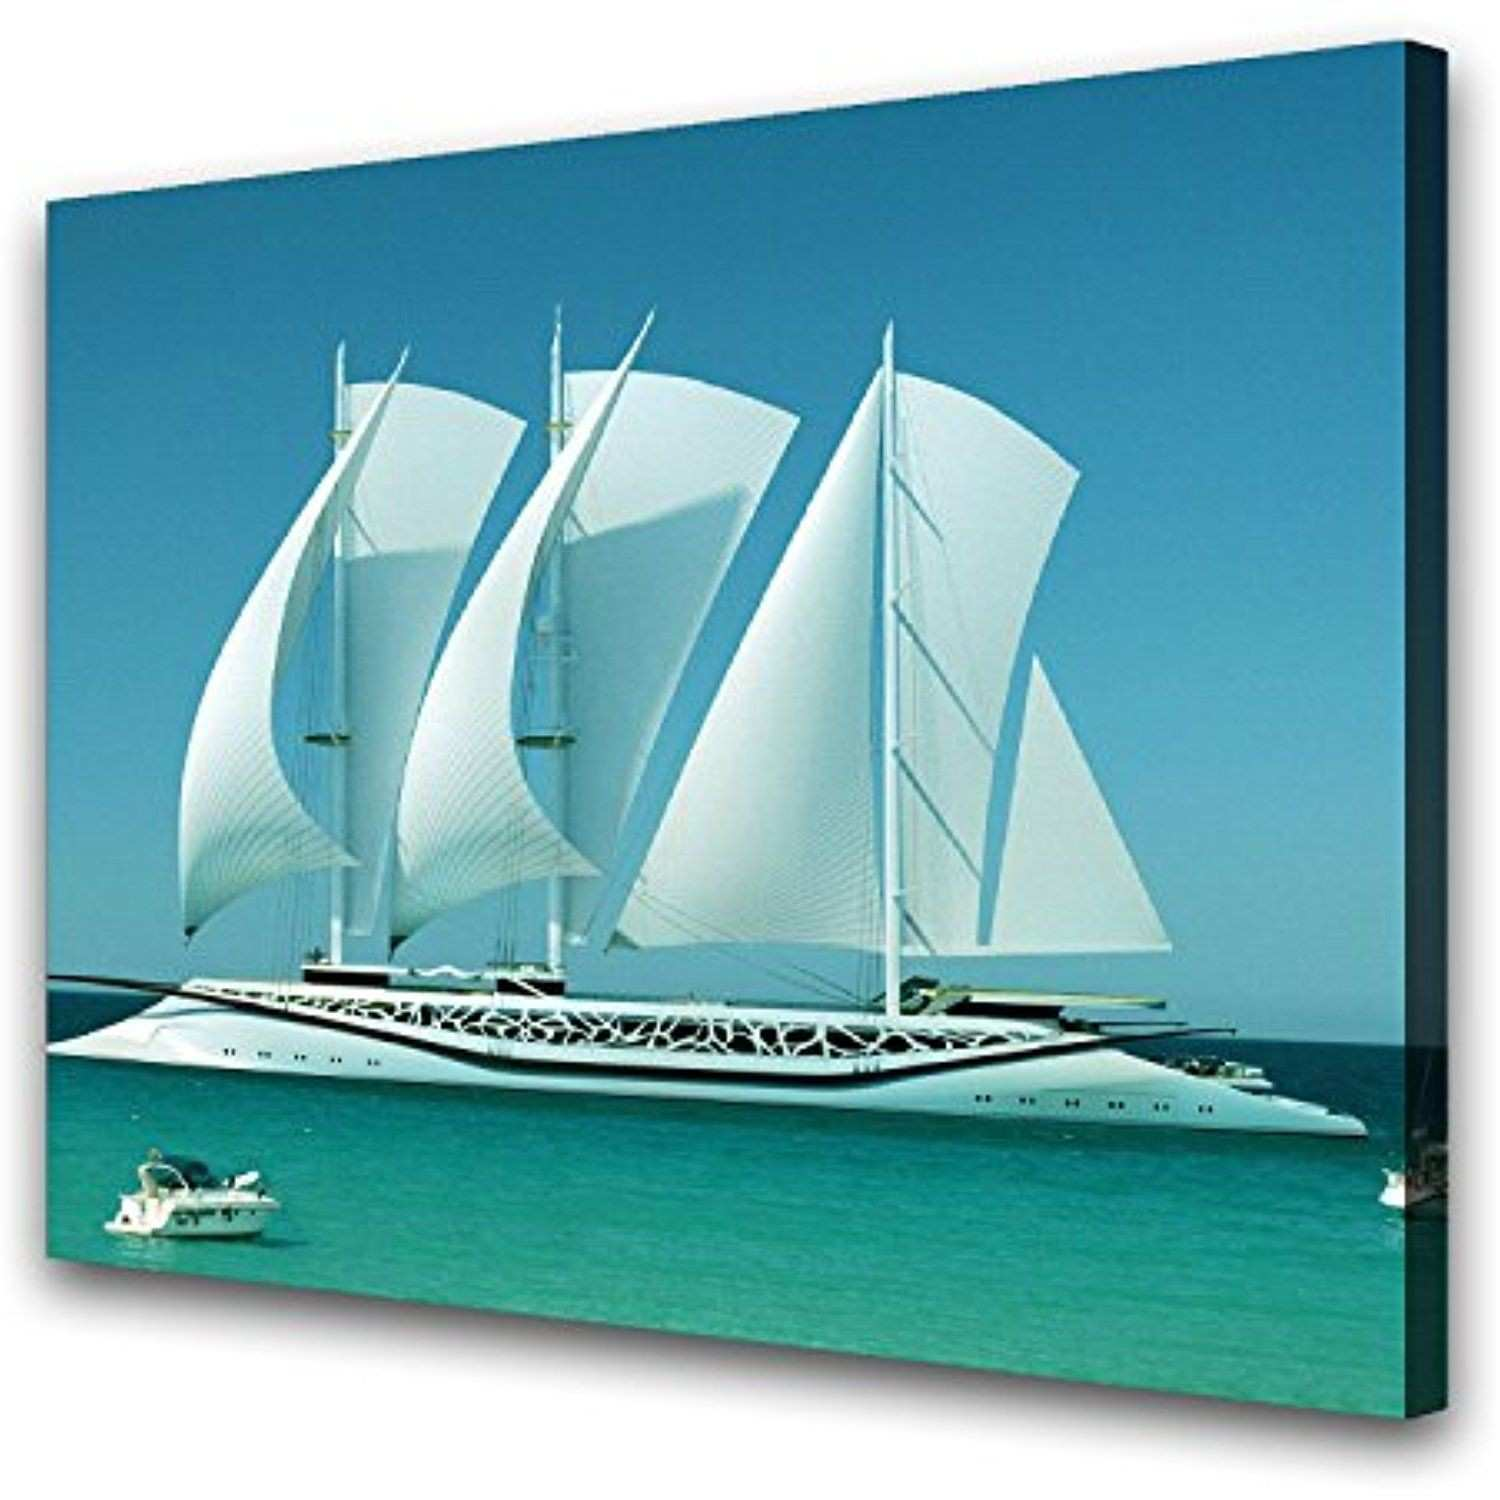 Airplane Canvas Wall Art New Hq Art Big White Ship Prints Paintings Canvas Wall Art Picture Home